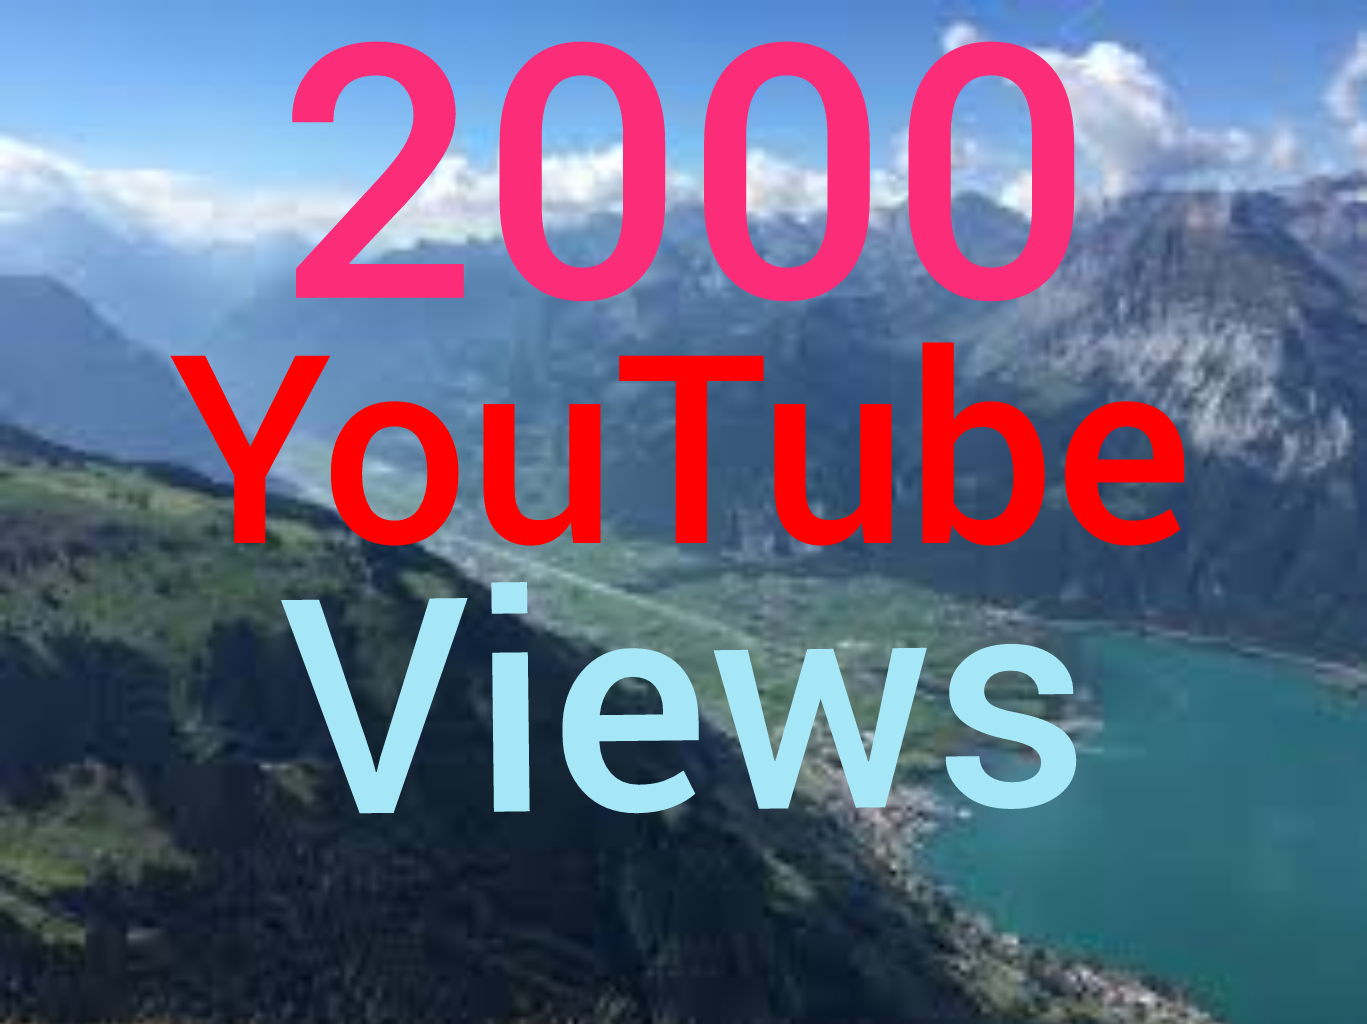 YouTube HQ Promotion on your Video in 24/48 hours